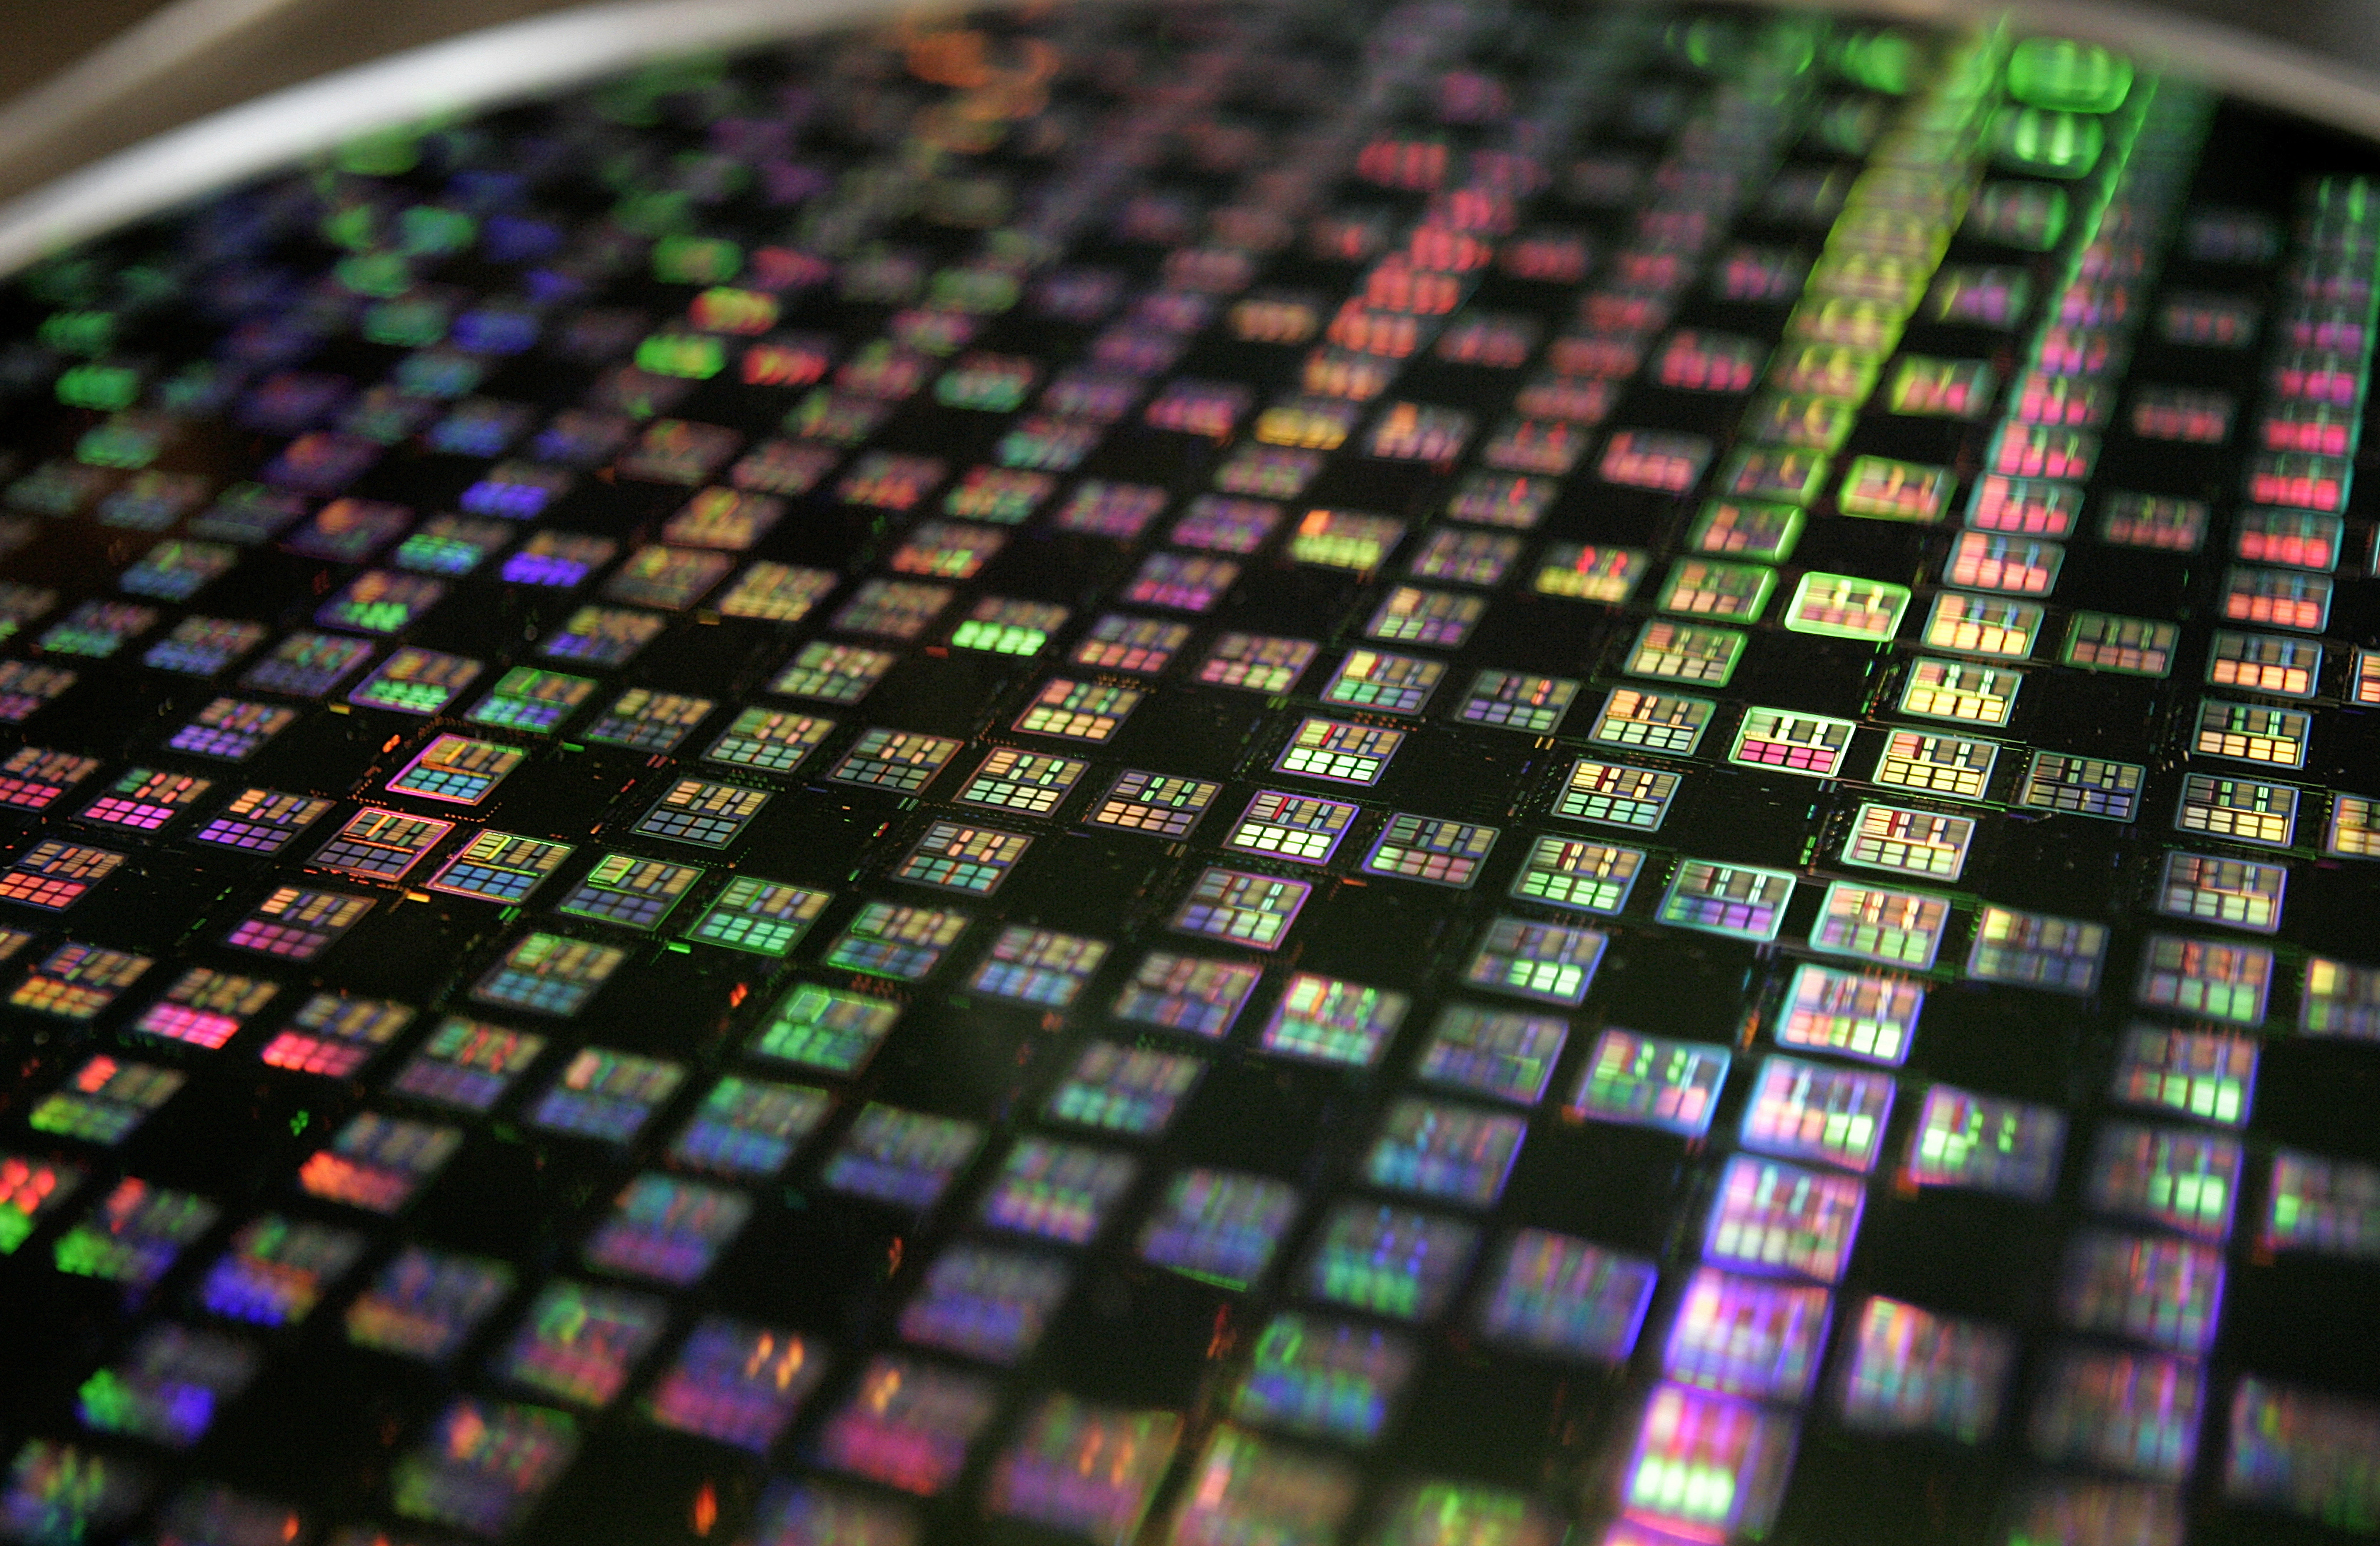 Marvell Technology will buy rival chipmaker Cavium for $6 billion